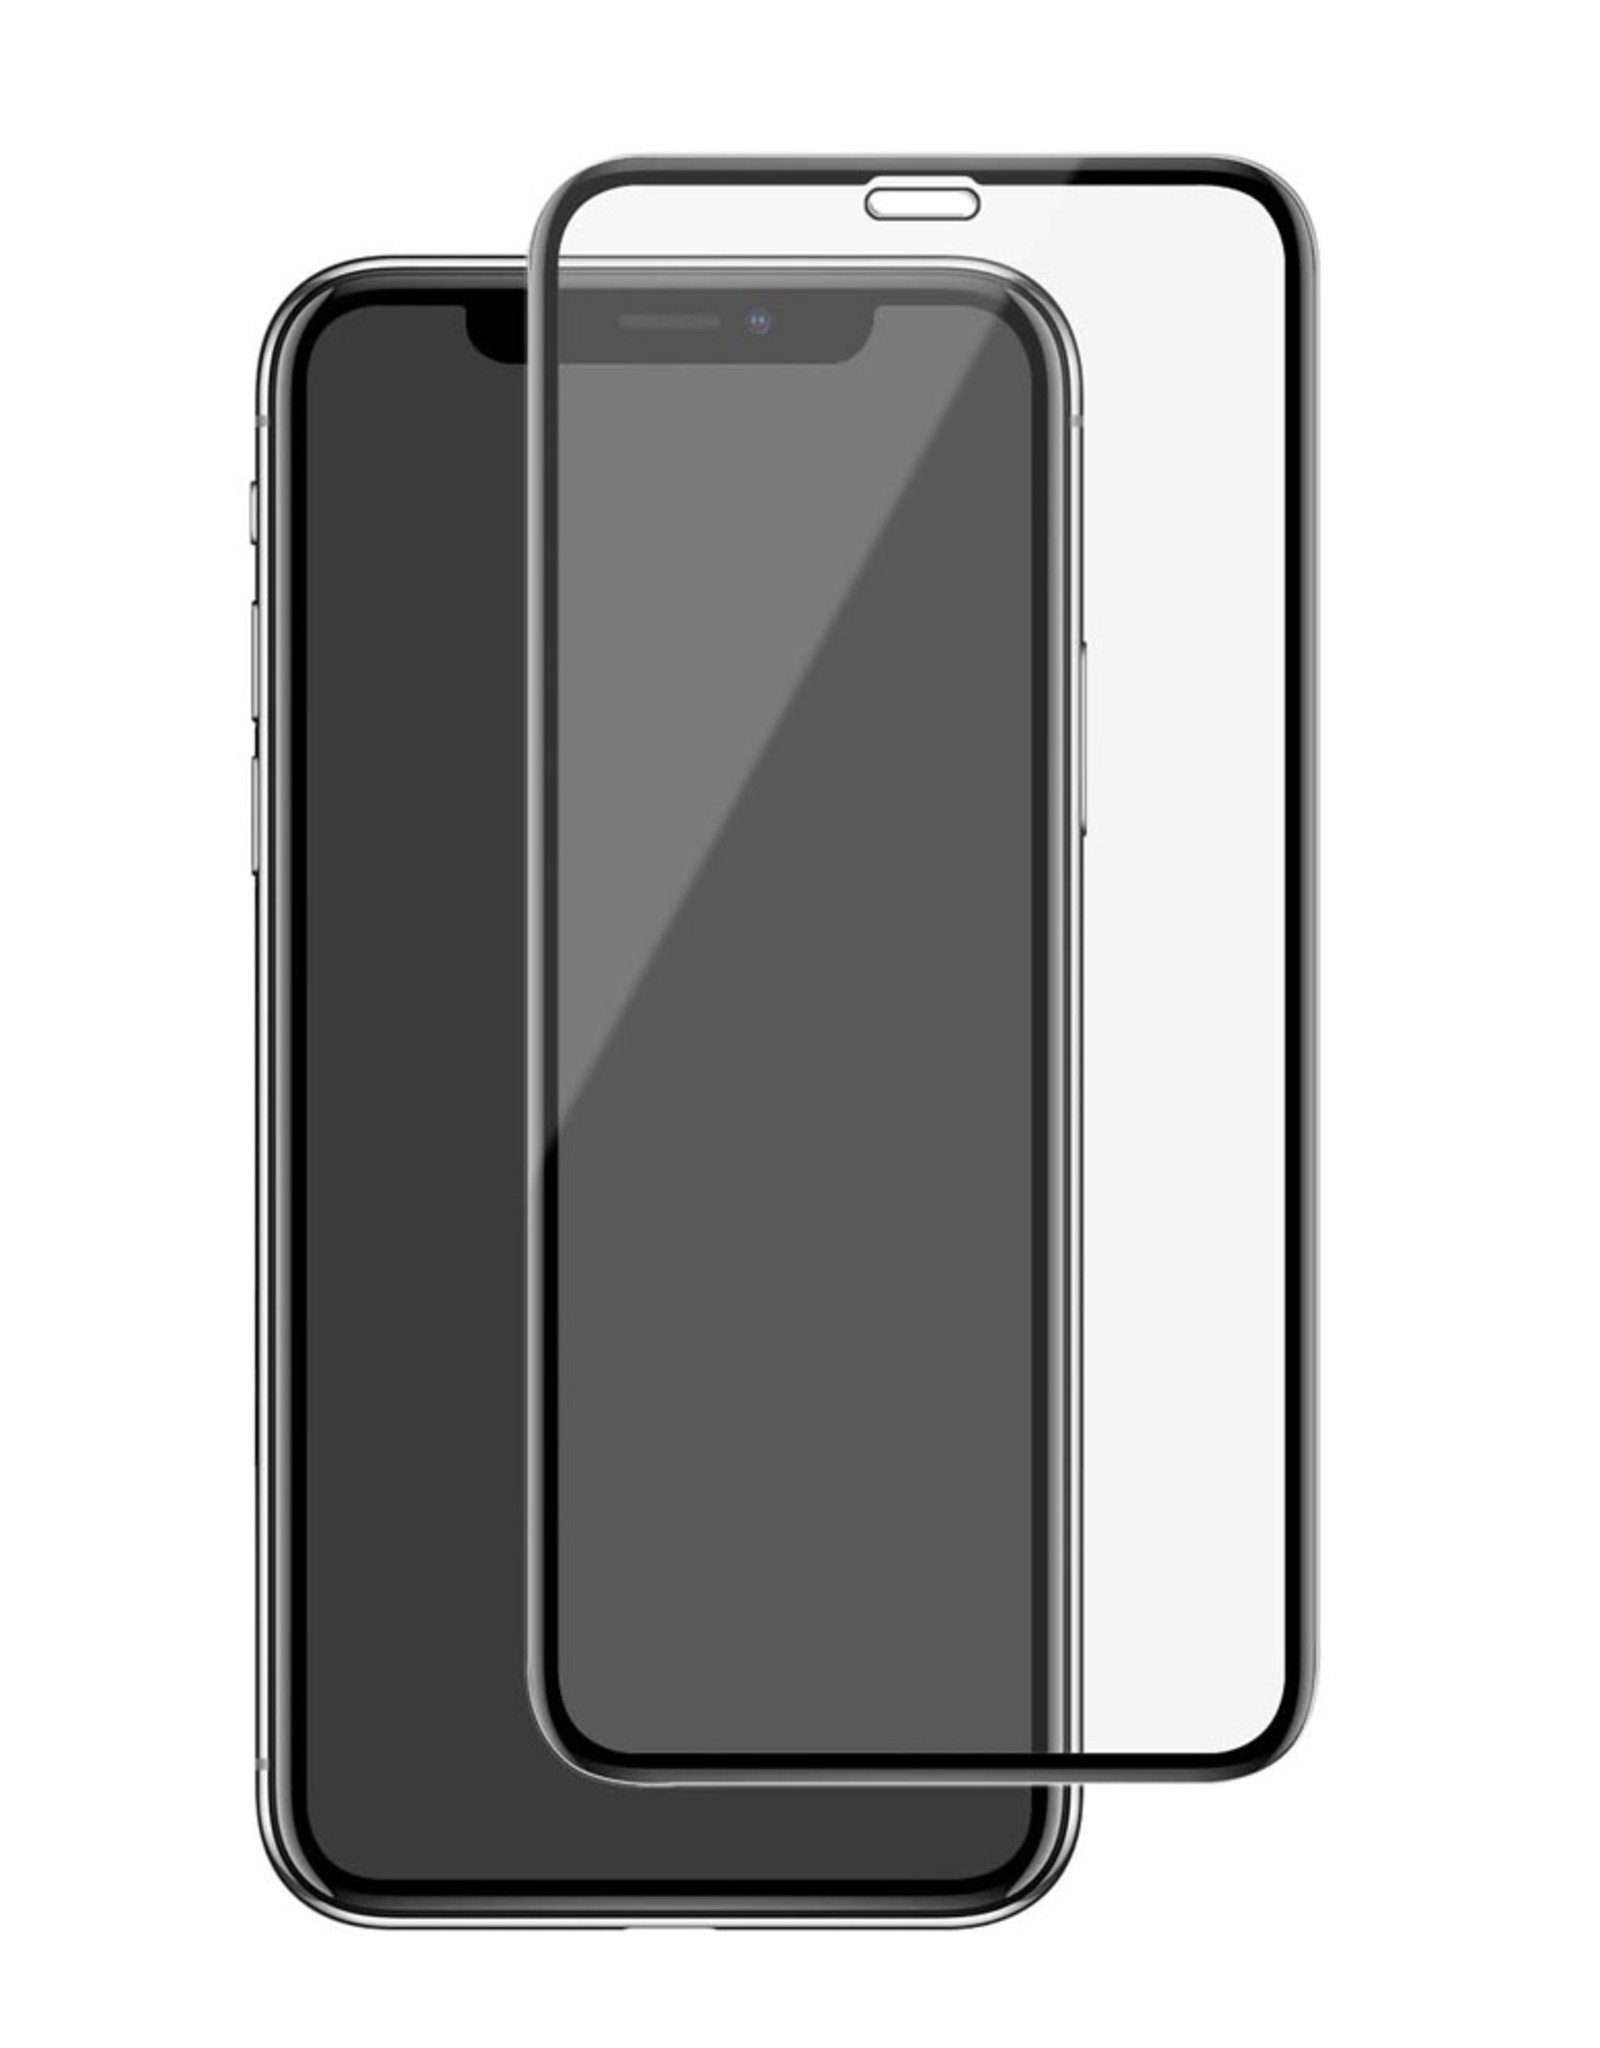 Blu Element Blu Element | Tempered Glass Screen Protector for iPhone 11 Pro Max / Xs Max 118-2159